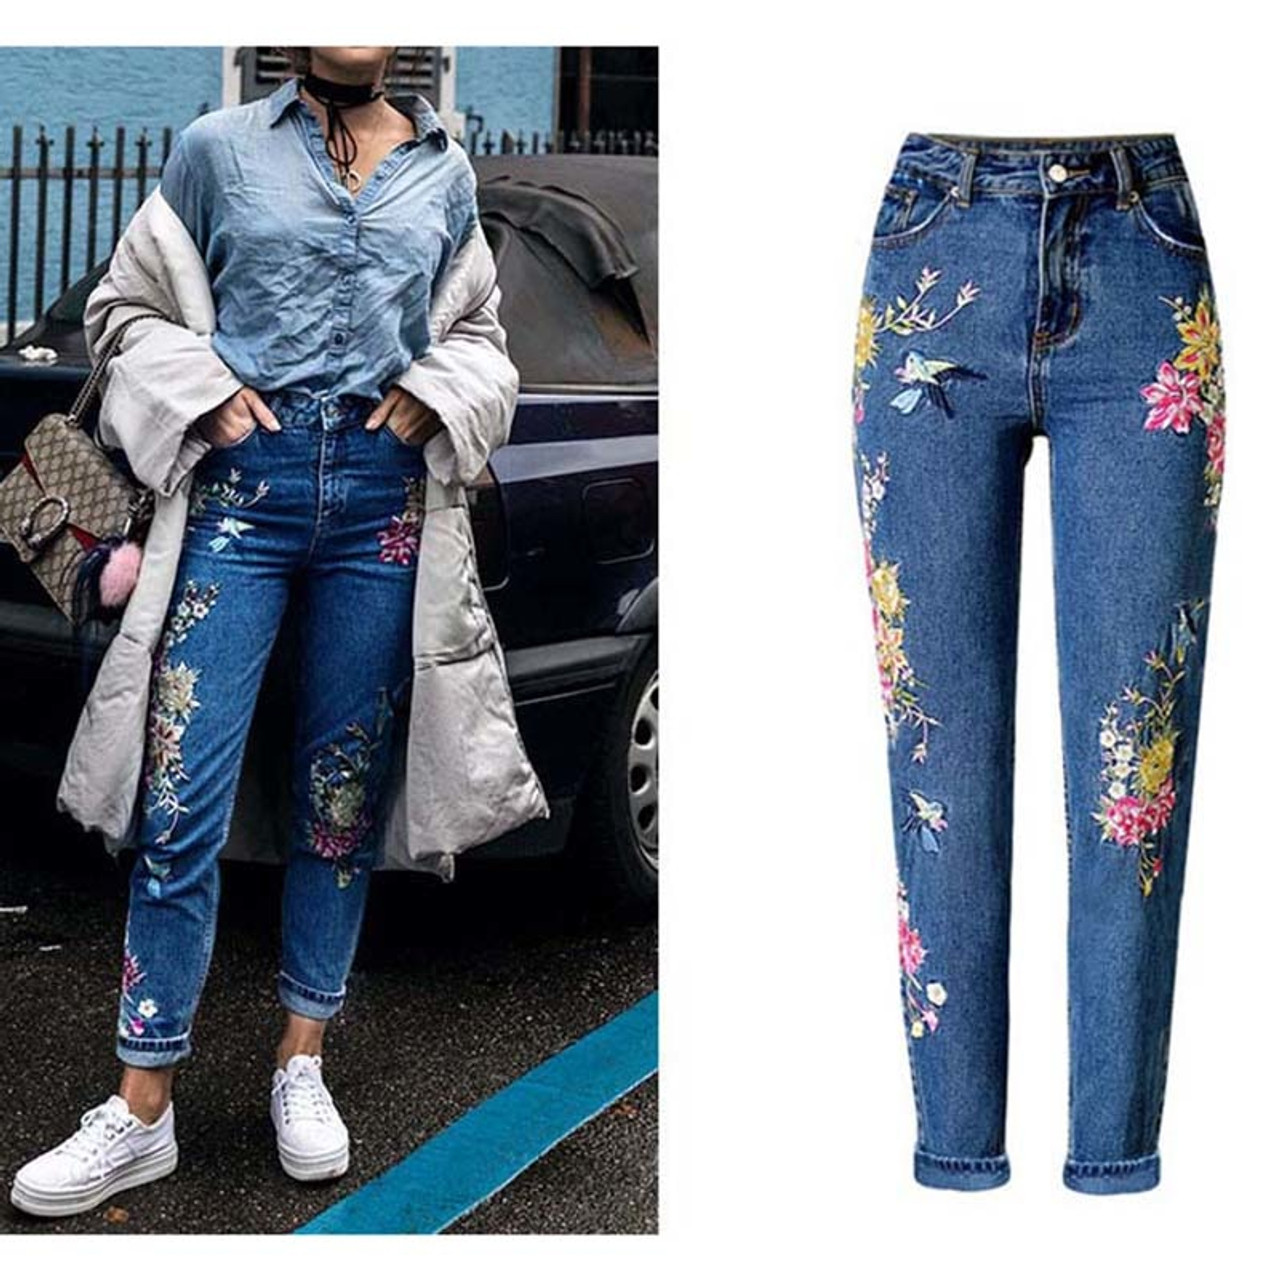 9af363dfd New Fashion Clothes Women Denim Pants Straight Long Jeans Pants 3D Flowers  Embroidery High Waist Ladies Jeans Legging Trousers - OnshopDeals.Com